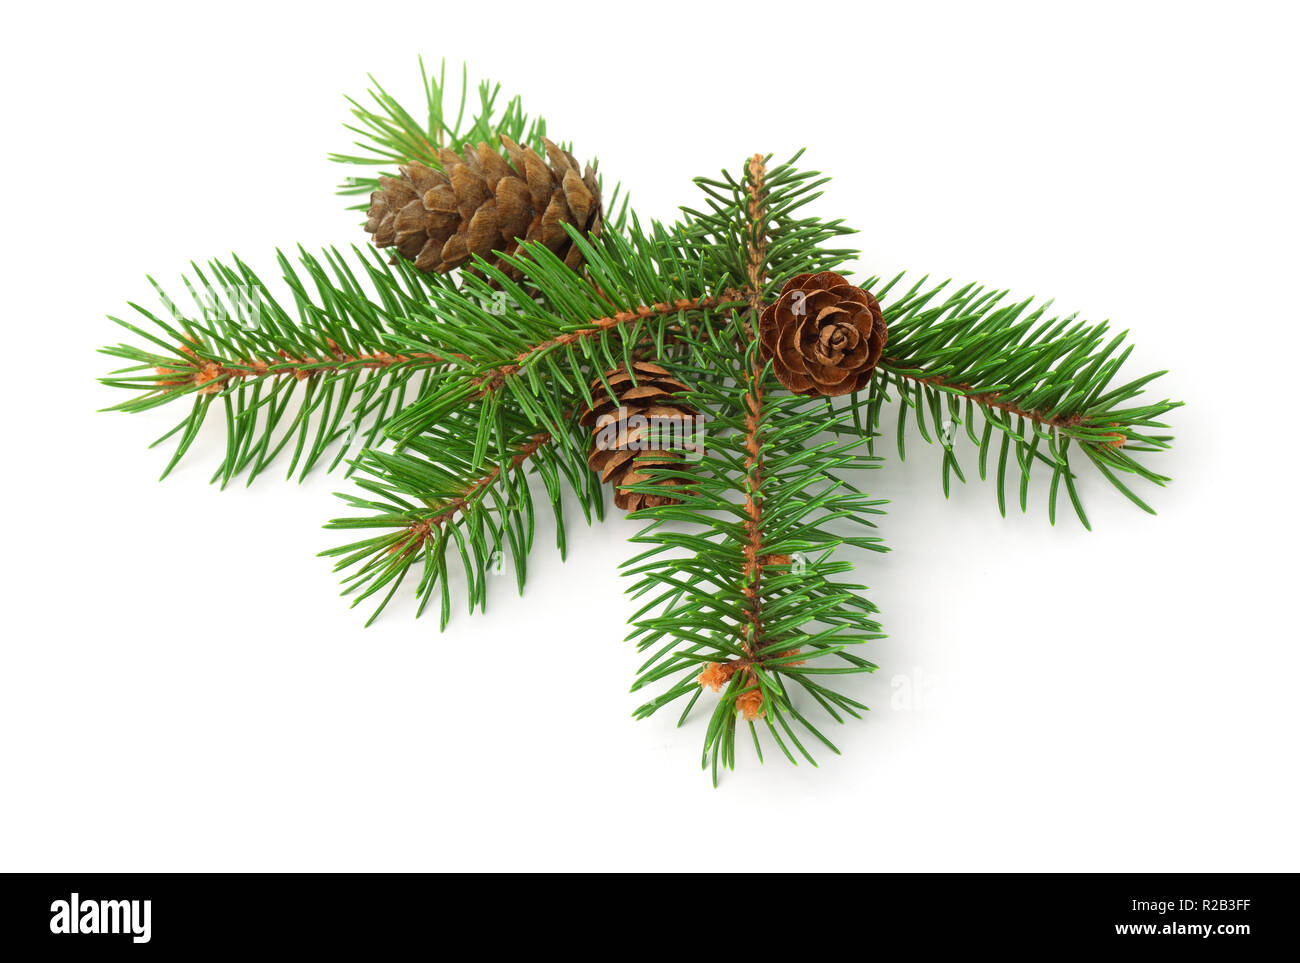 Green spruce branch with cones isolated on white - Stock Image